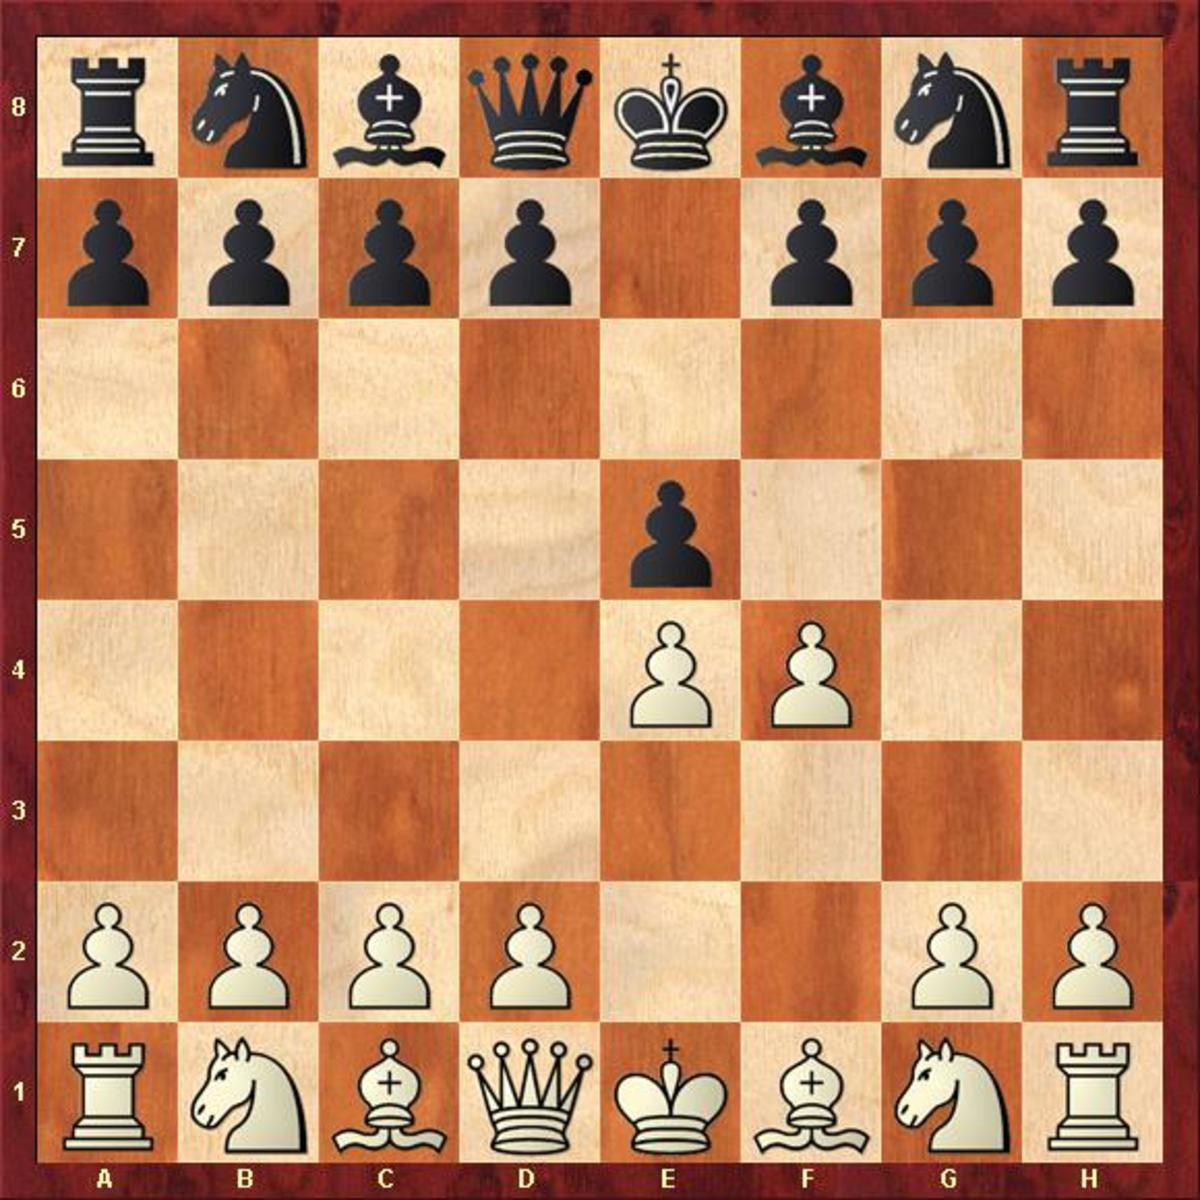 Starting Position of the King's Gambit.